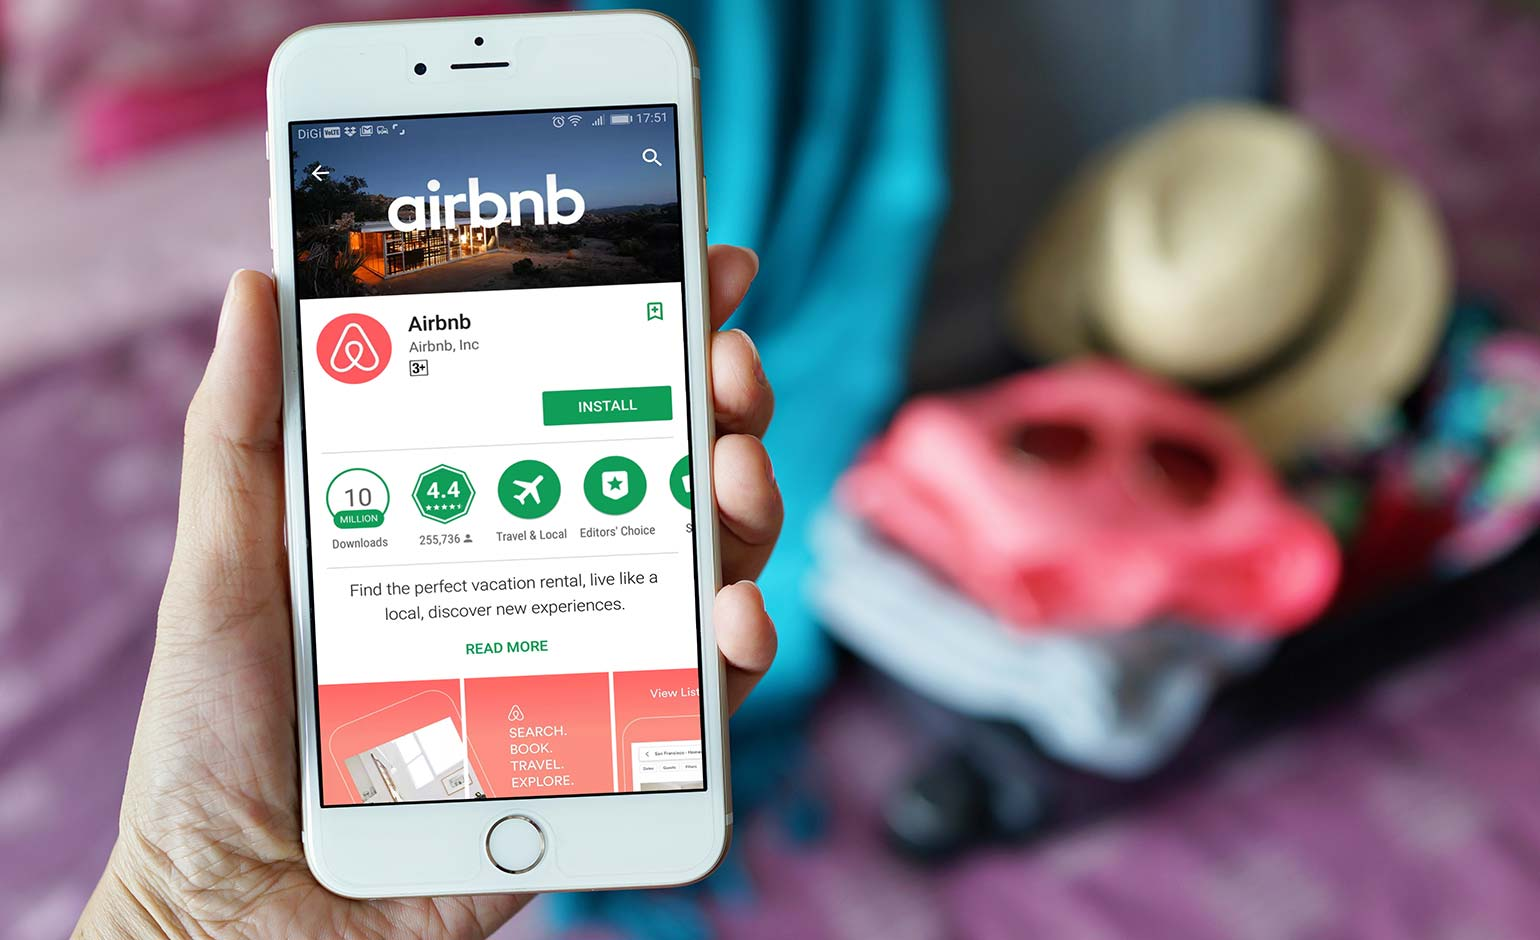 Airbnb bosses to visit Bath as company plans regulation to appease residents